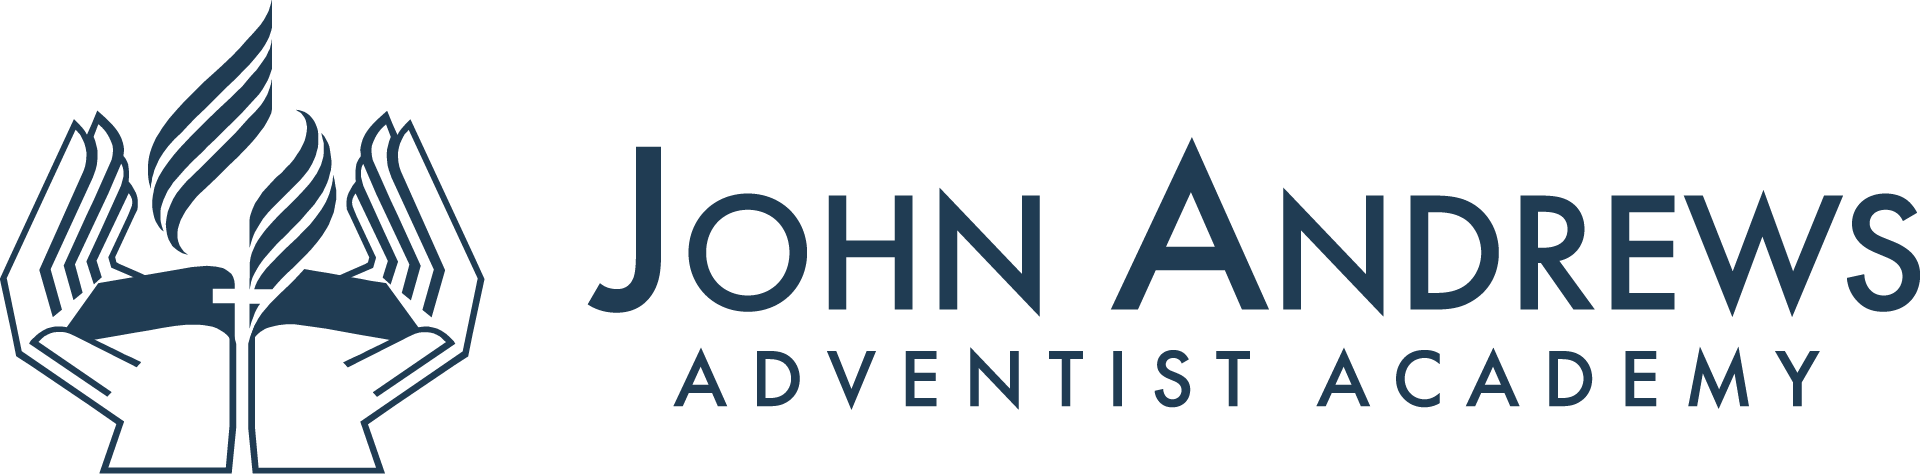 John Andrews Adventist Academy